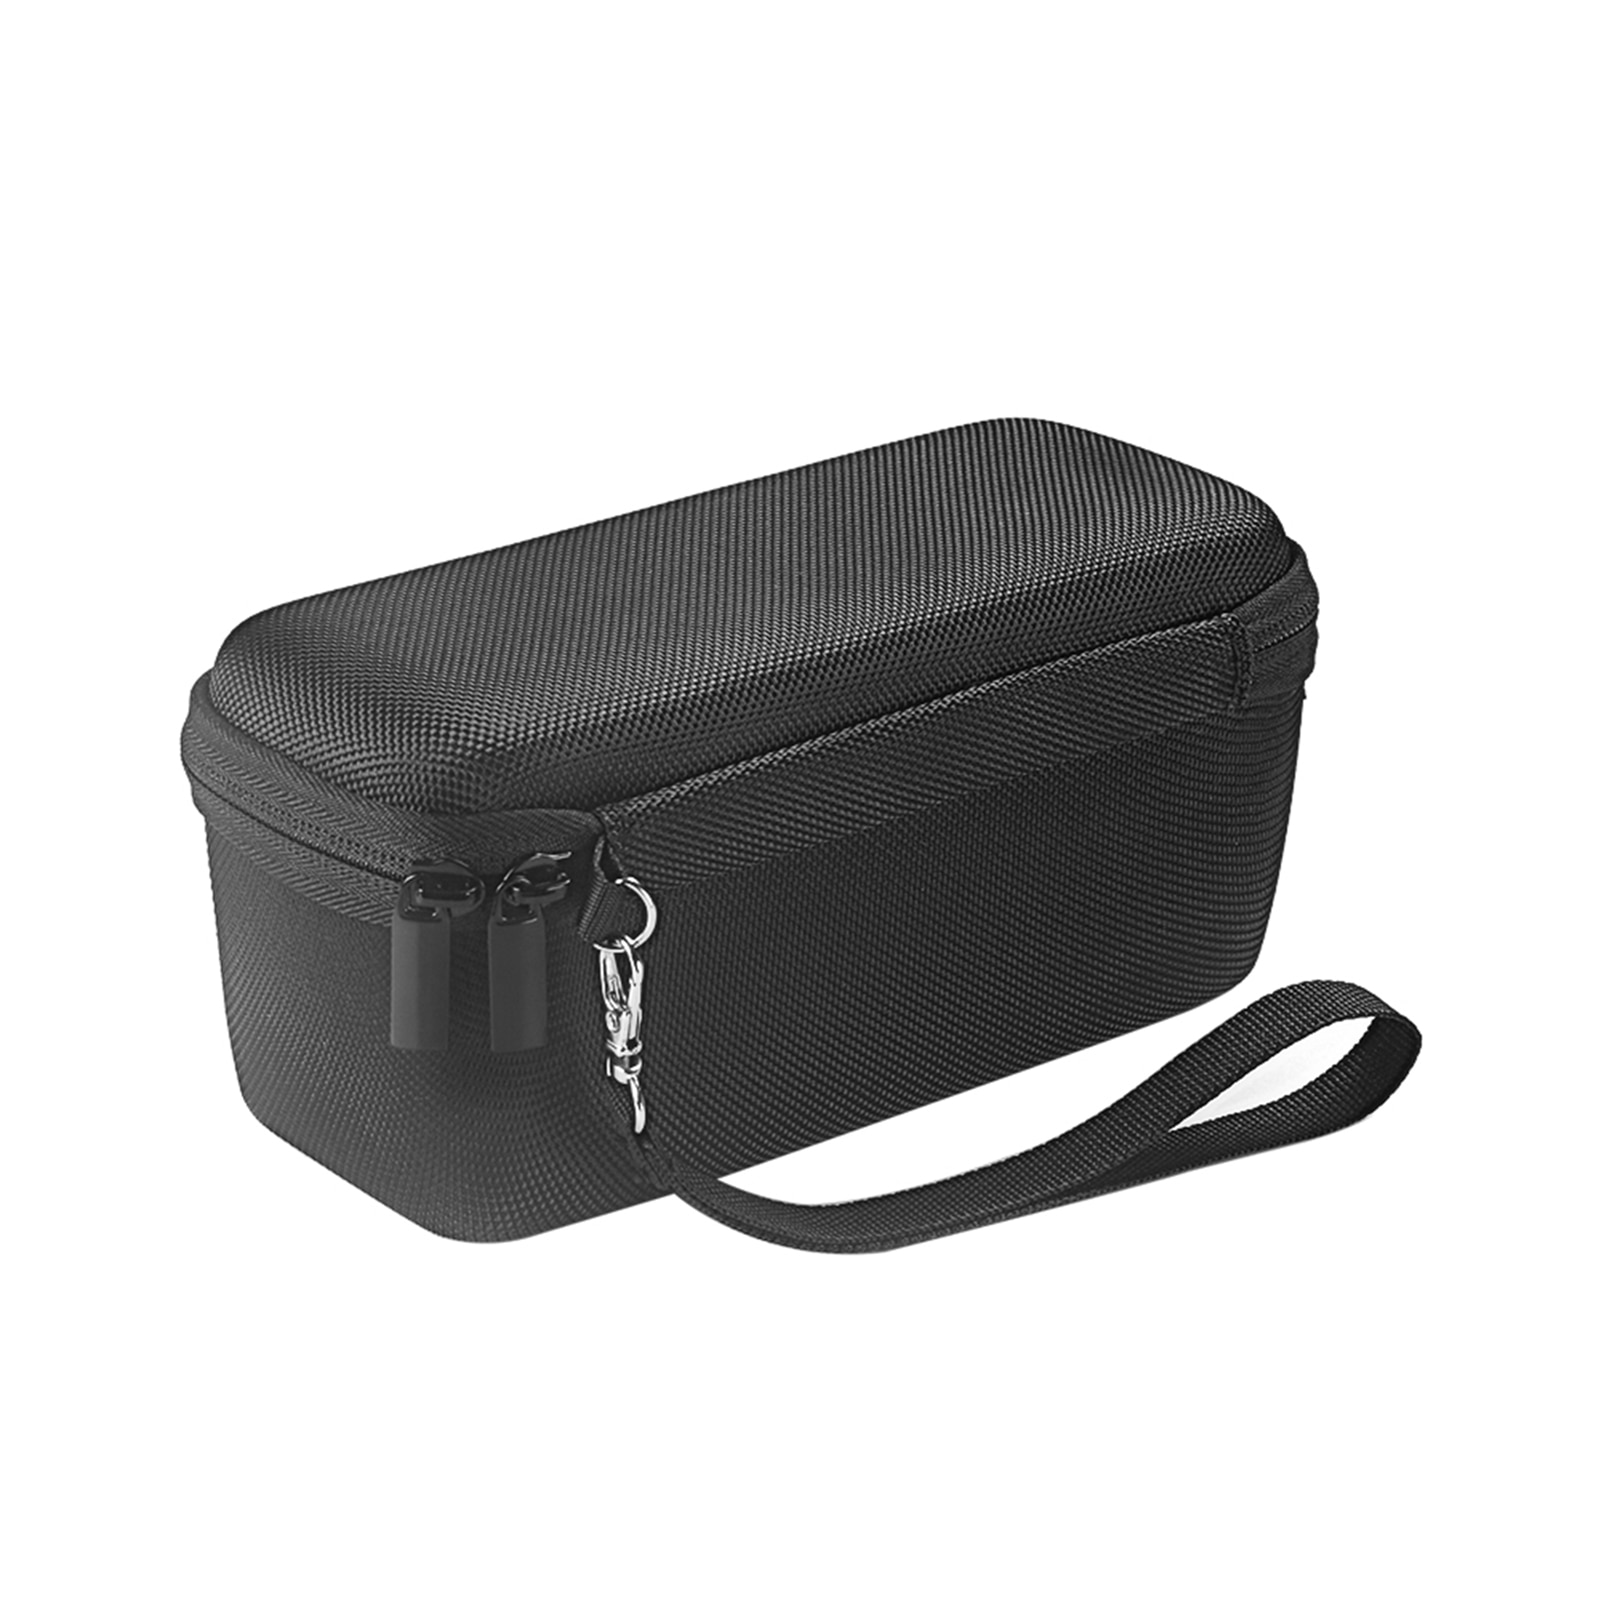 Carrying Case Storage Bag Protect Pouch Sleeve Cover Travel Case For Sonos Roam Wireless Bluetooth Speaker